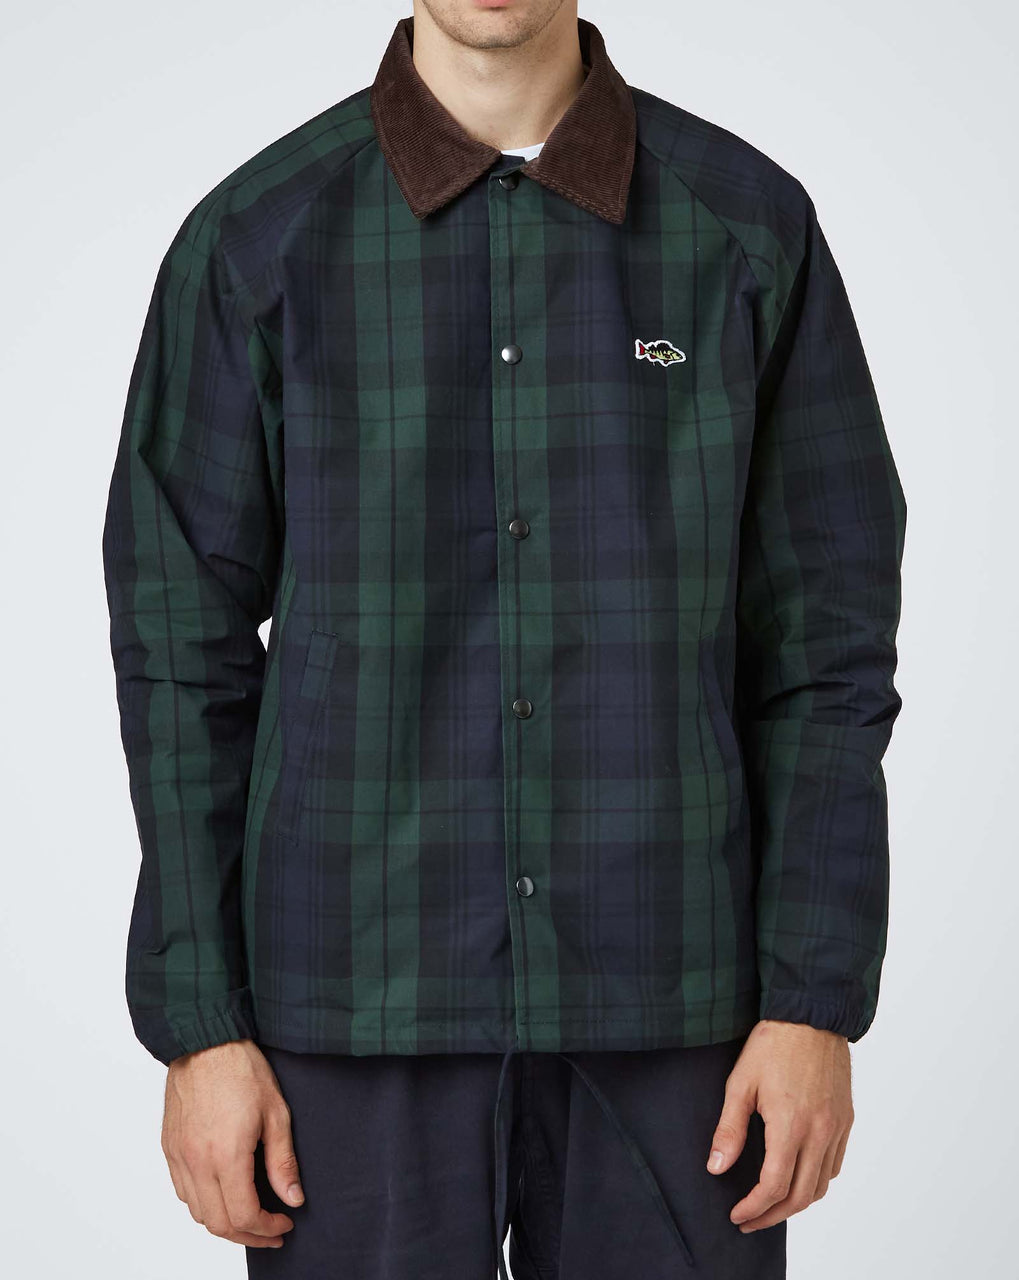 Stay Hungry Aborre Waxed Cotton Jacket (Black Watch Tartan)